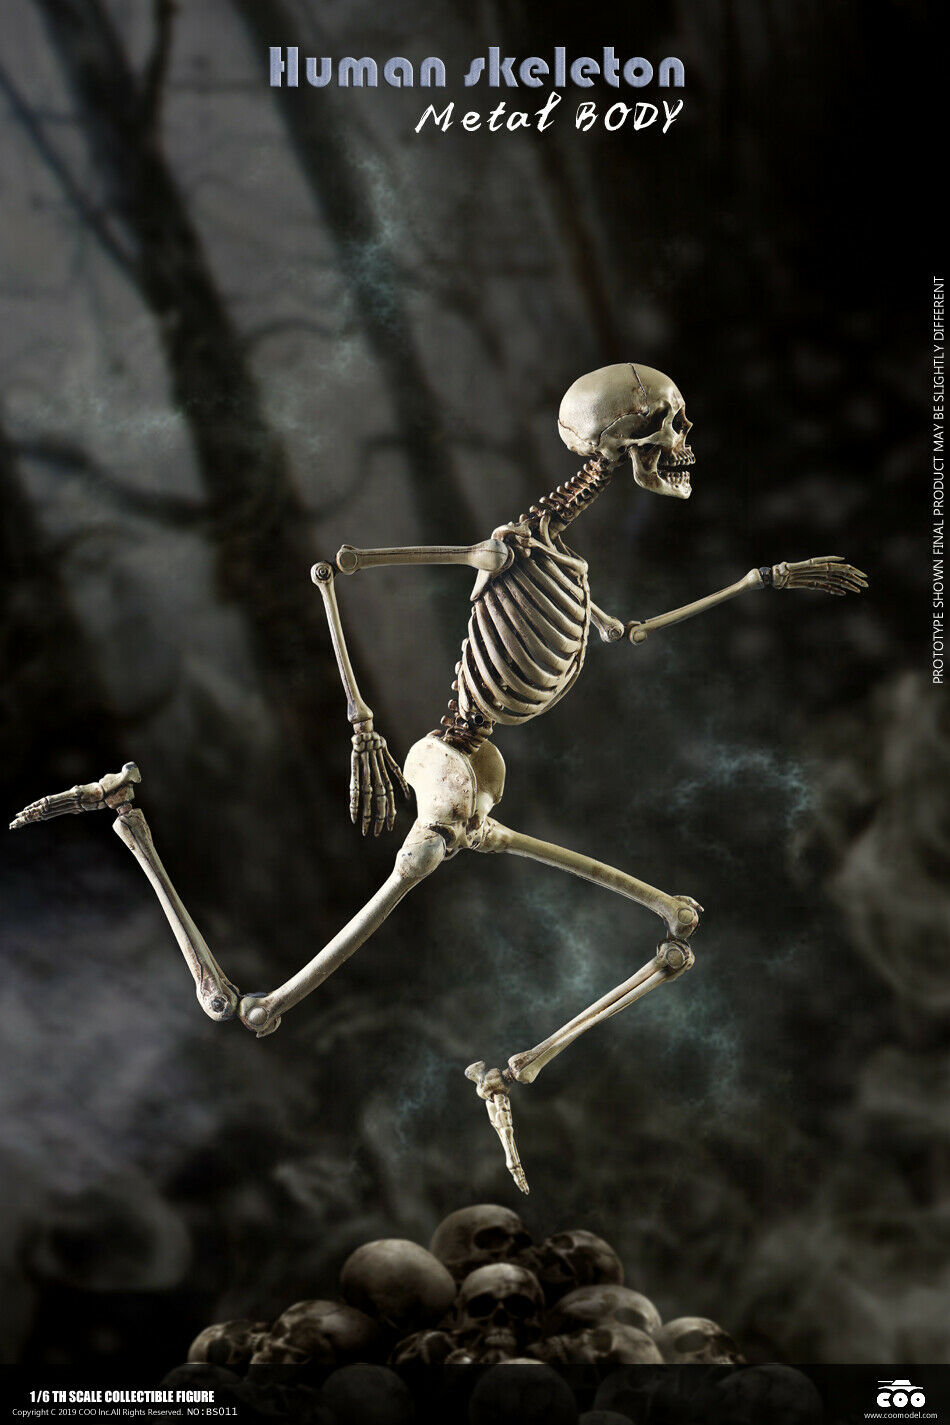 COOMODEL 1 6 NOBS011 The Human Skeleton Metal Body 12'' Movable Action Figure